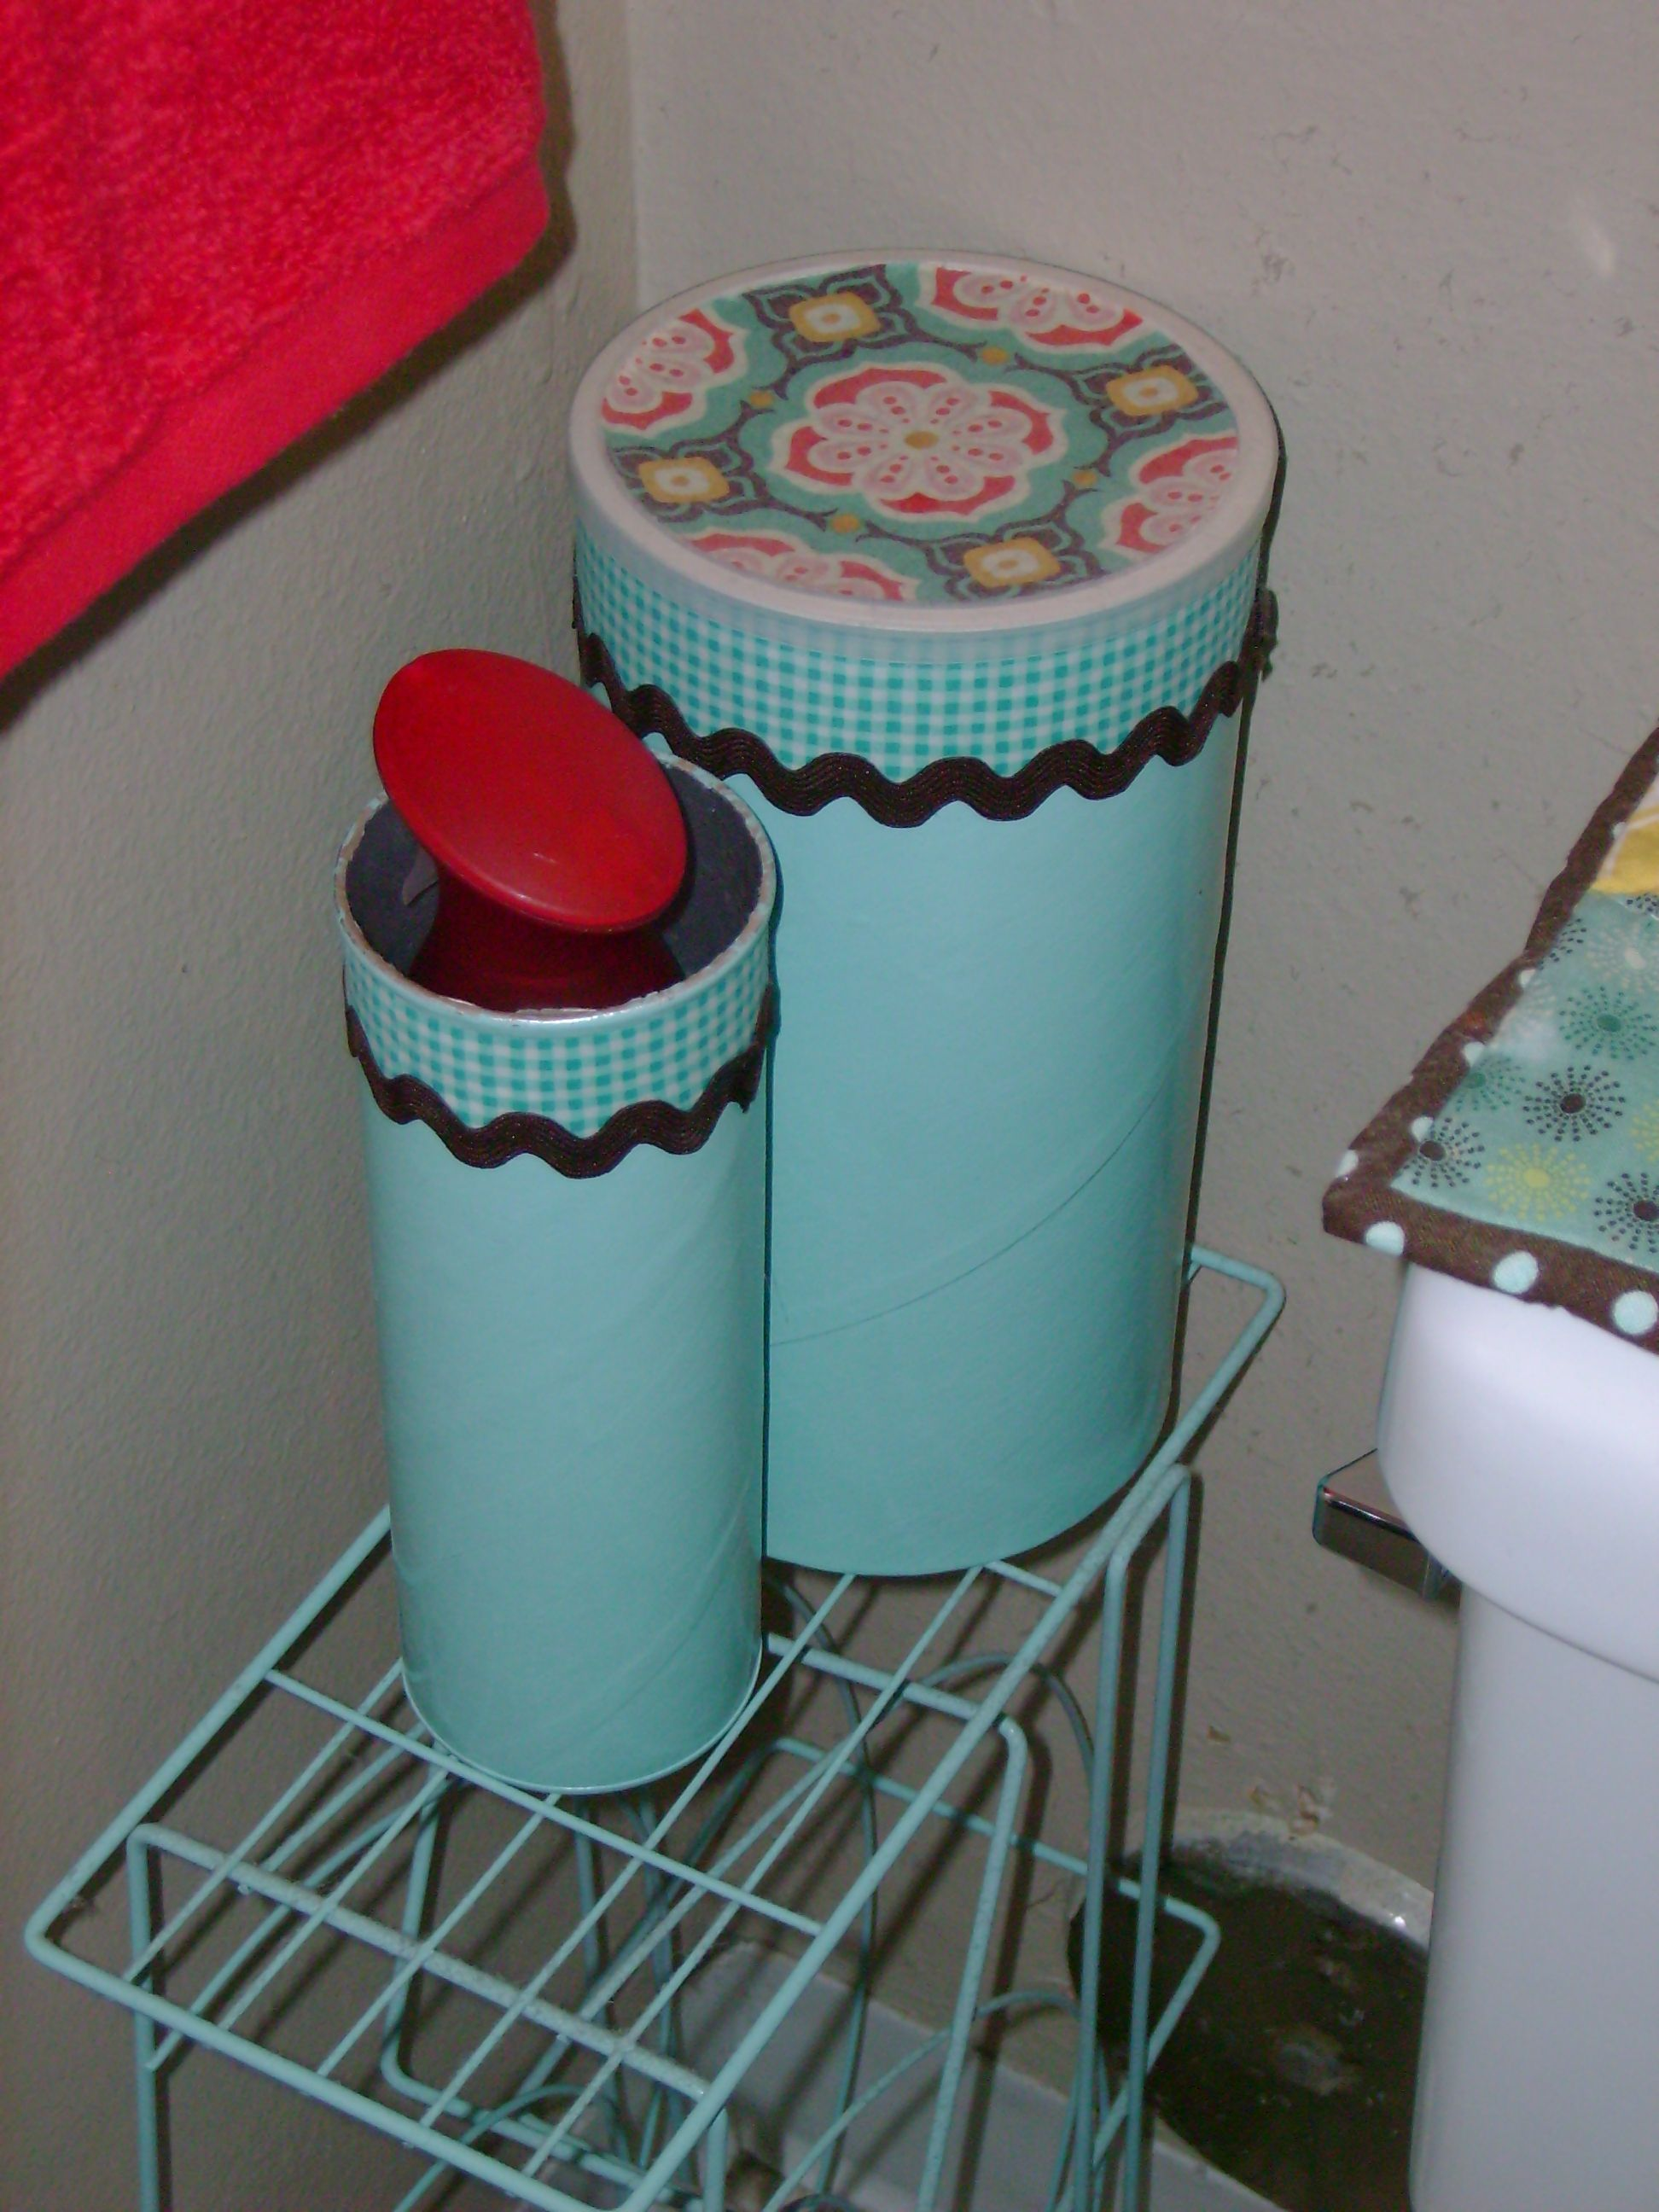 Oatmeal Can Used For Extra Toilet Paper Storage In The Bathroom. Pringles  Can To Hold